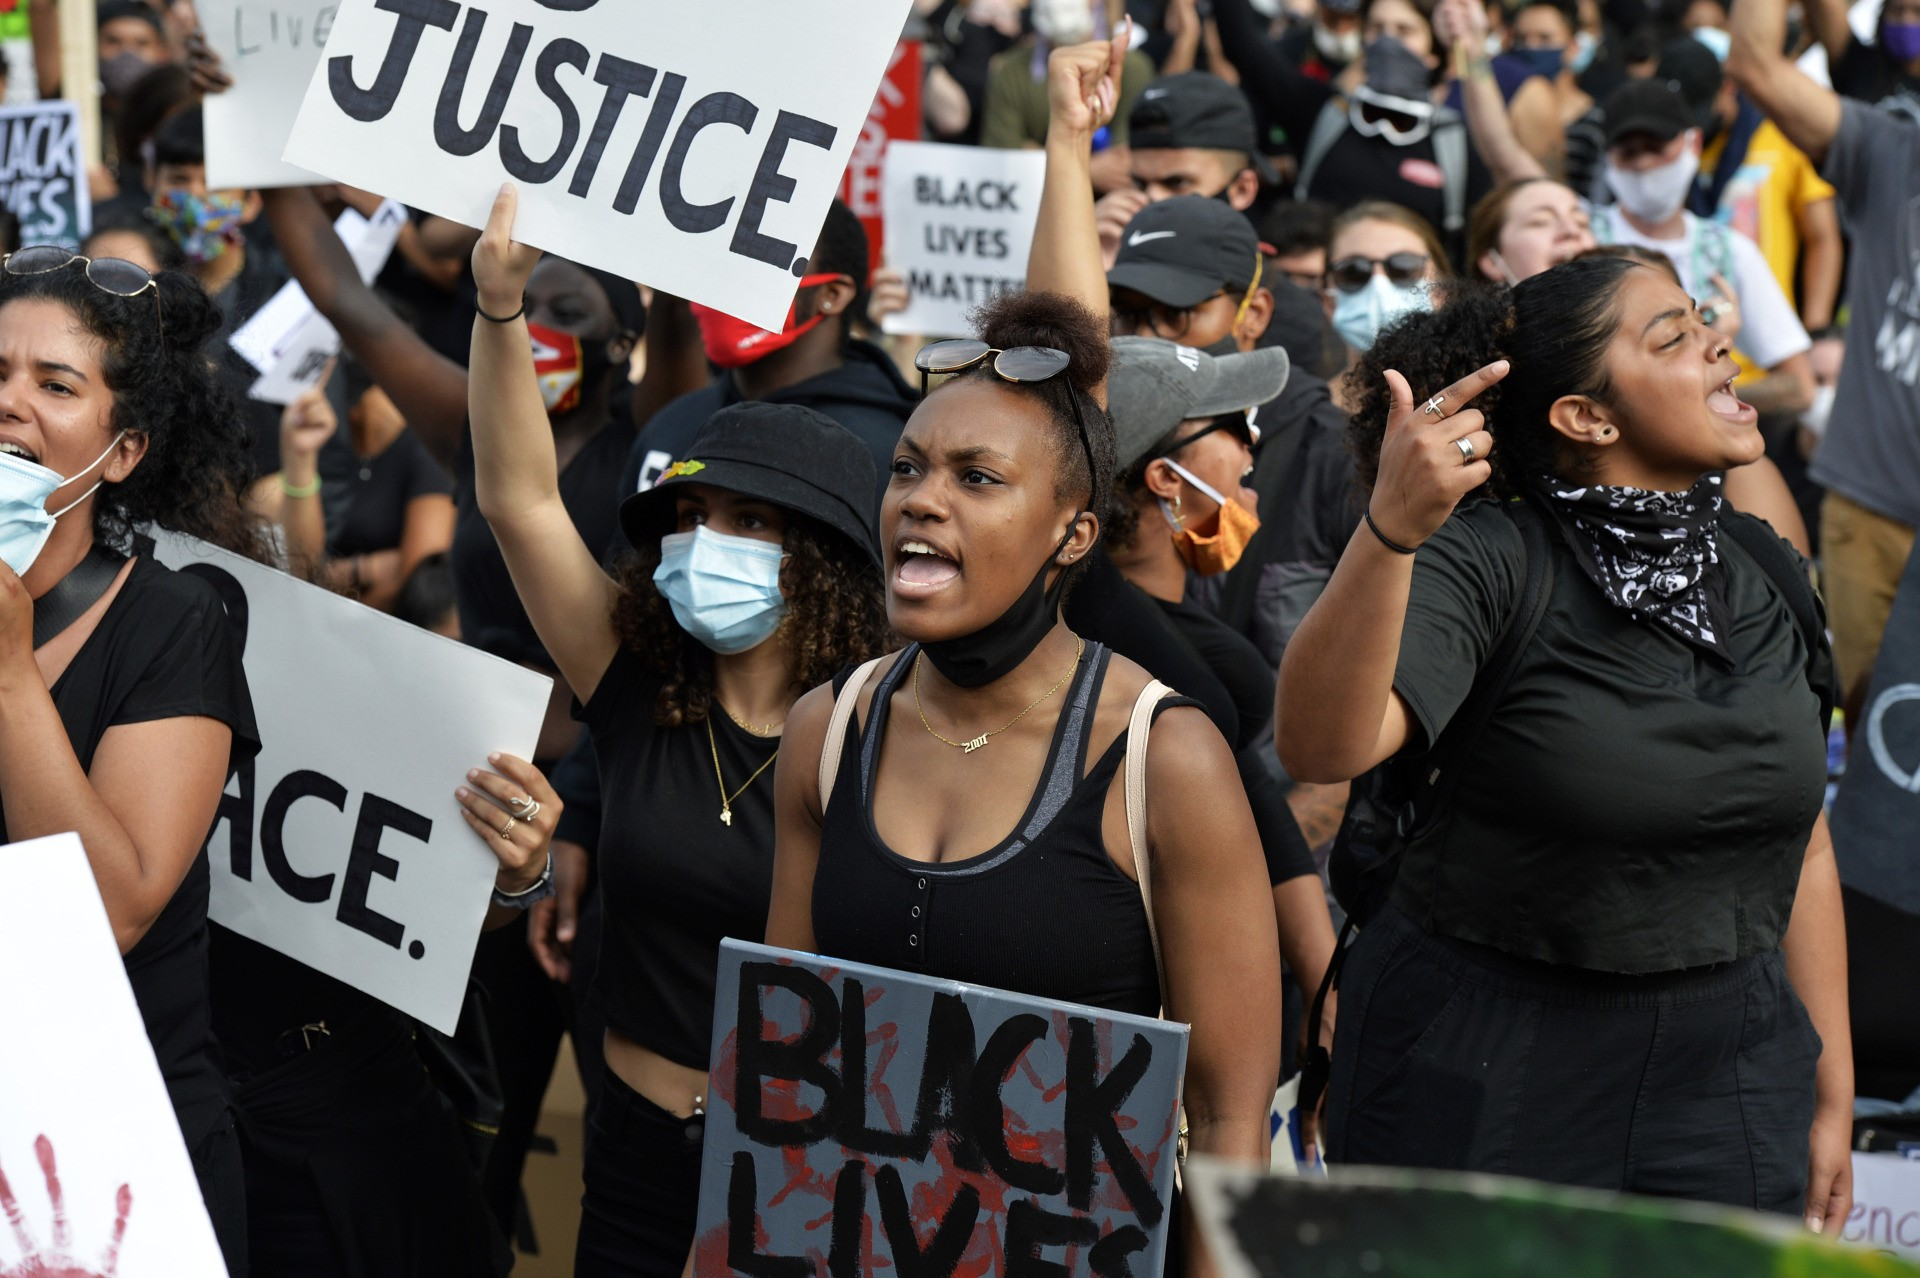 Protesters rally on the steps of the State House, calling for an end to Police injustice, during a Black Lives Matter rally in Providence, Rhode Island on June 5, 2020. (Photo by Joseph Prezioso / AFP) (Photo by JOSEPH PREZIOSO/AFP via Getty Images)